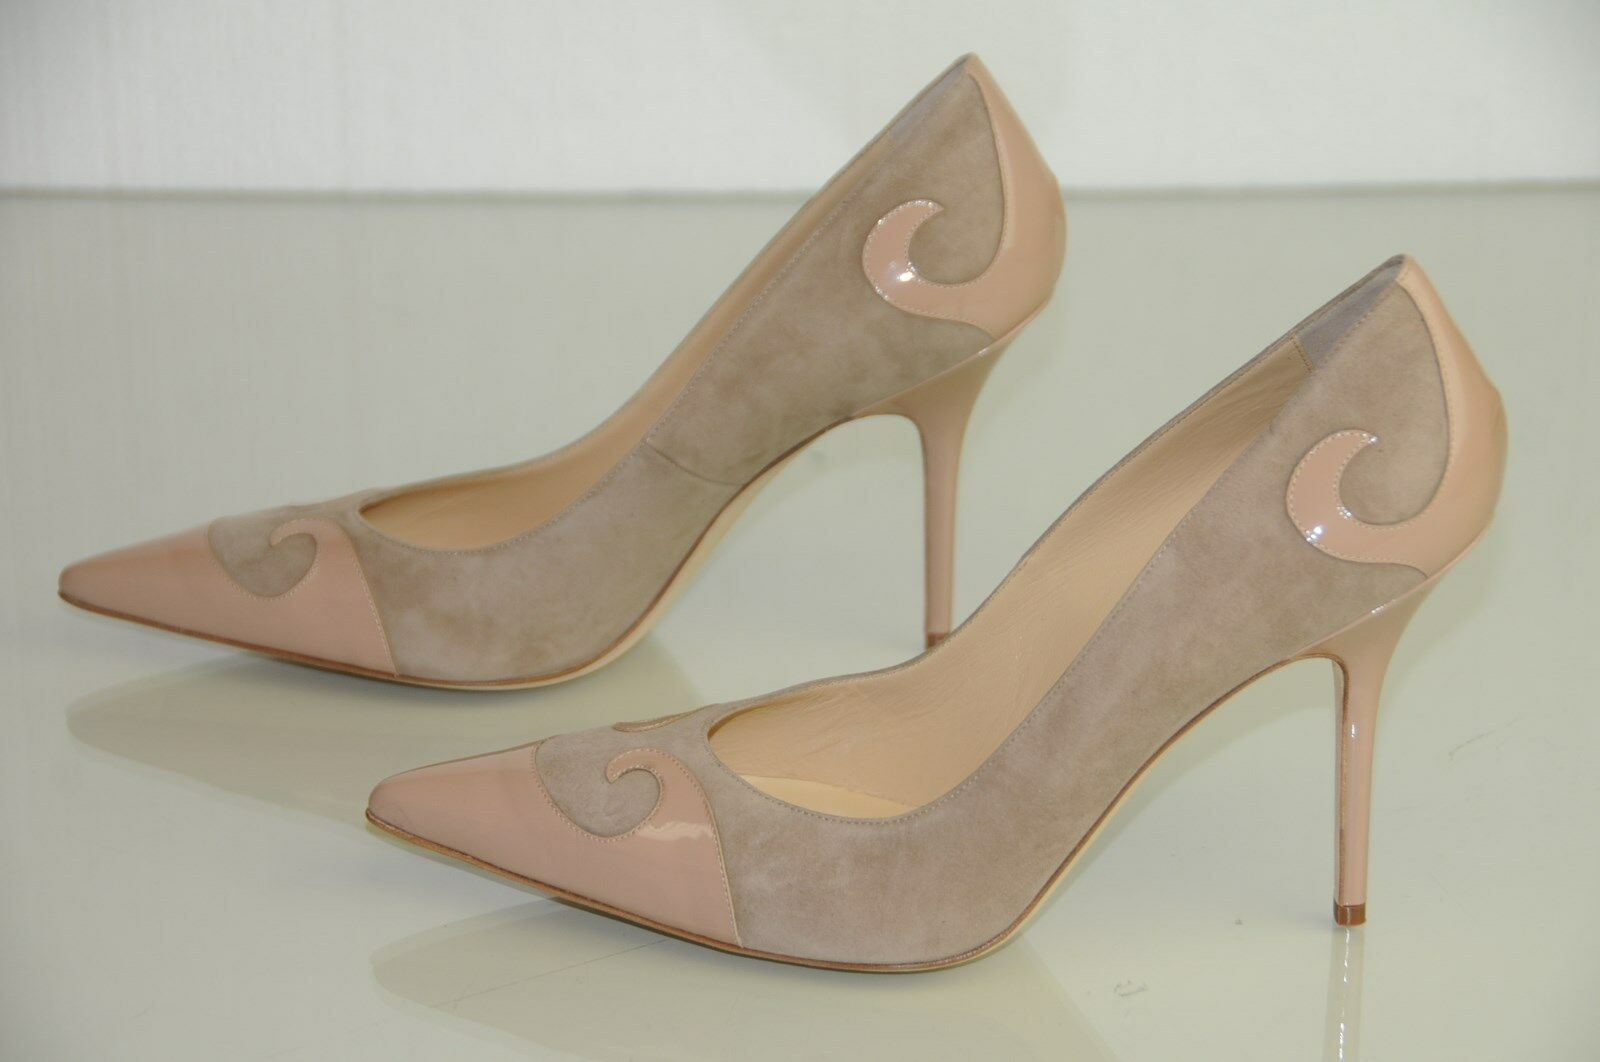 795 New Manolo Blahnik ROVASENDA NUDE BEIGE Flesh Suede Patent BB shoes 42 39